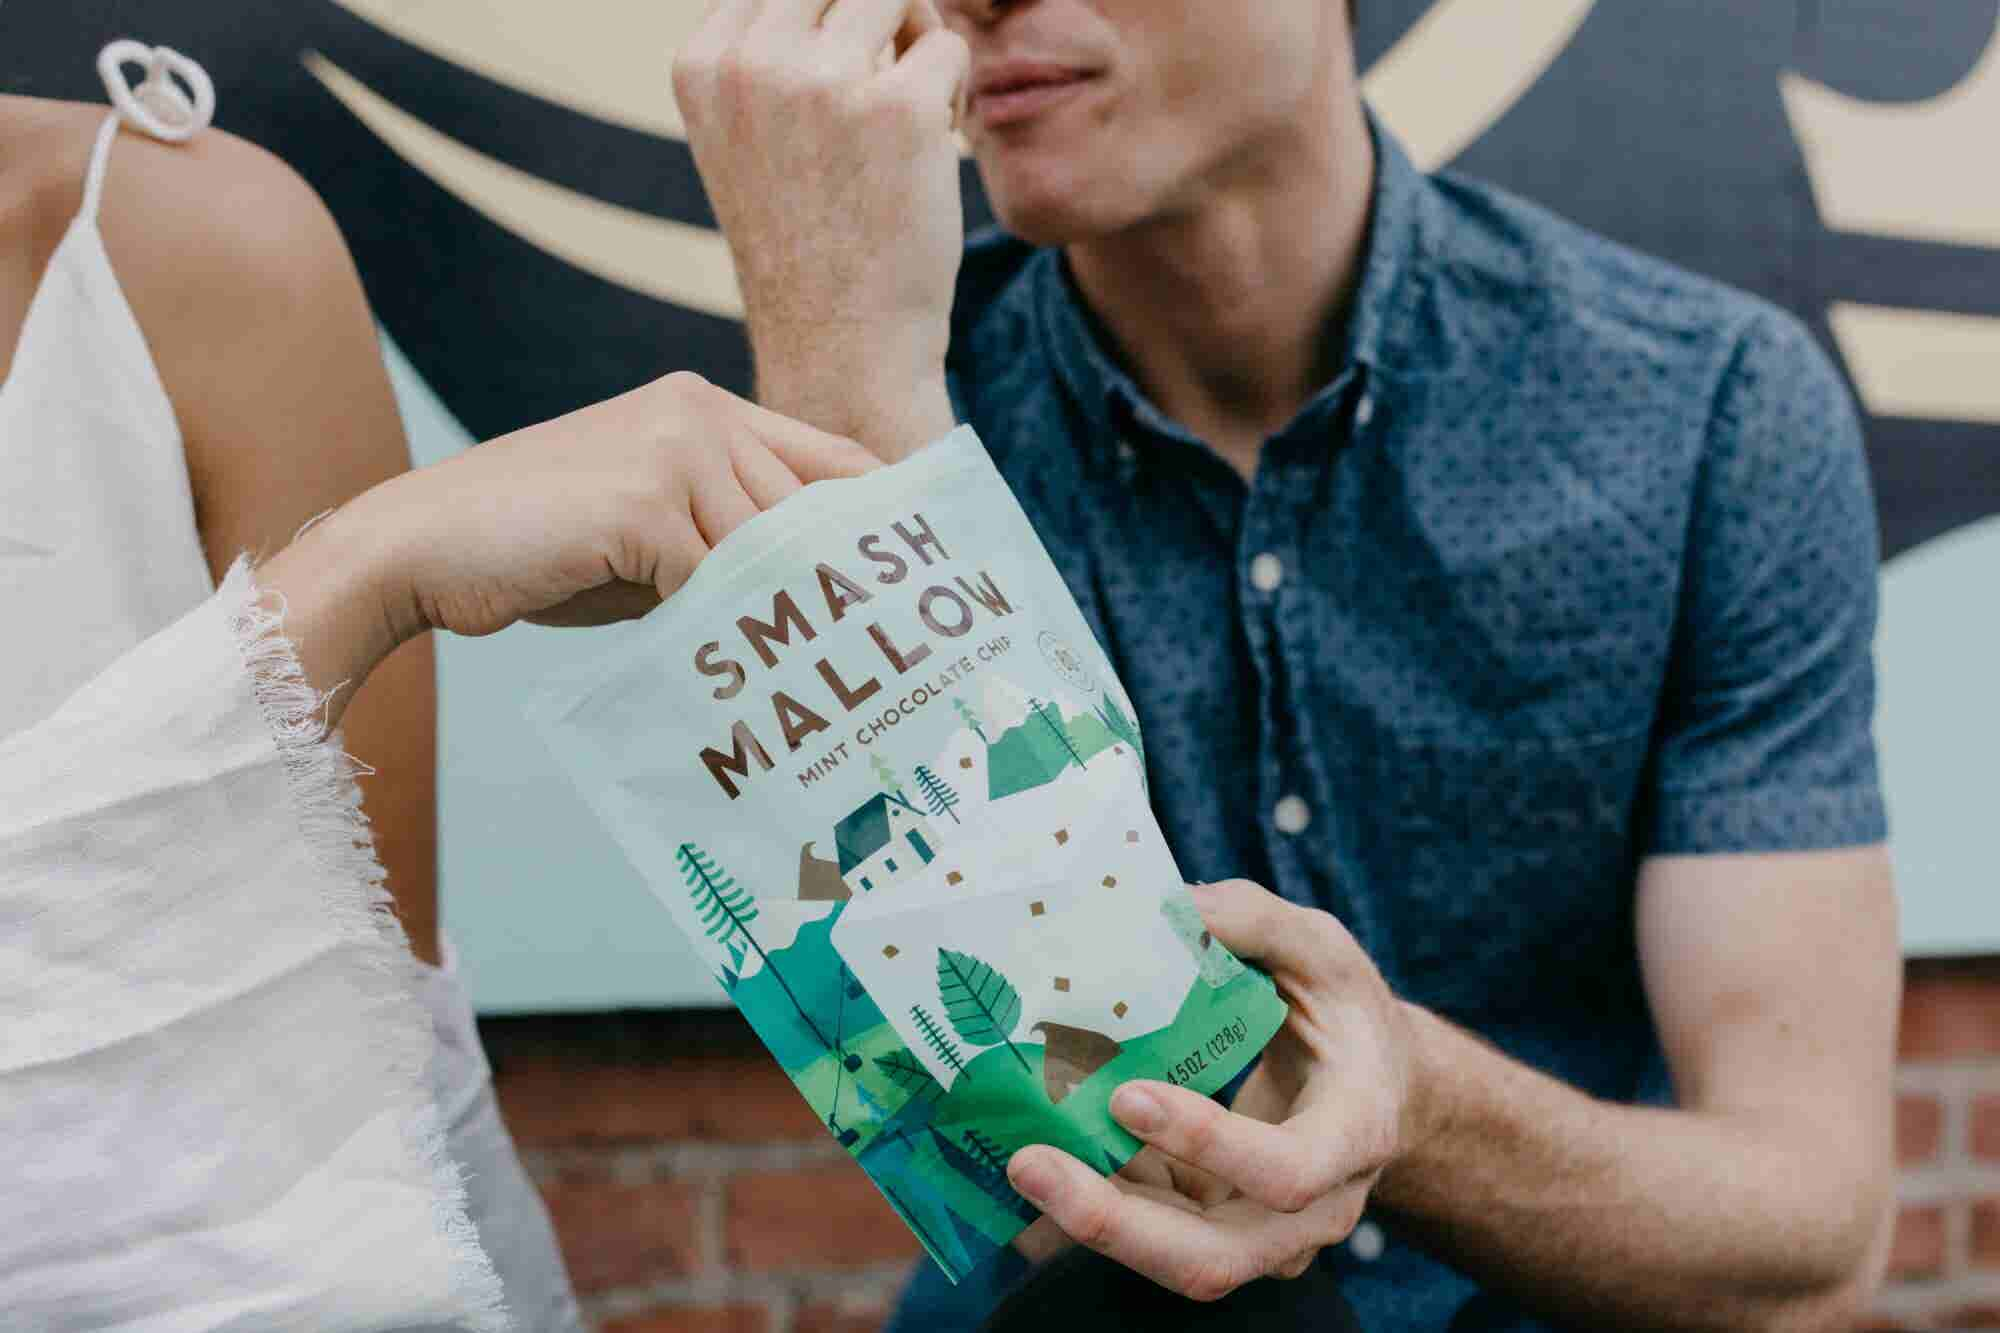 The Food Industry Is a 'Gold Rush' for Entrepreneurs, Says the Founder of Krave Jerky and a $40 Million Marshmallow Brand